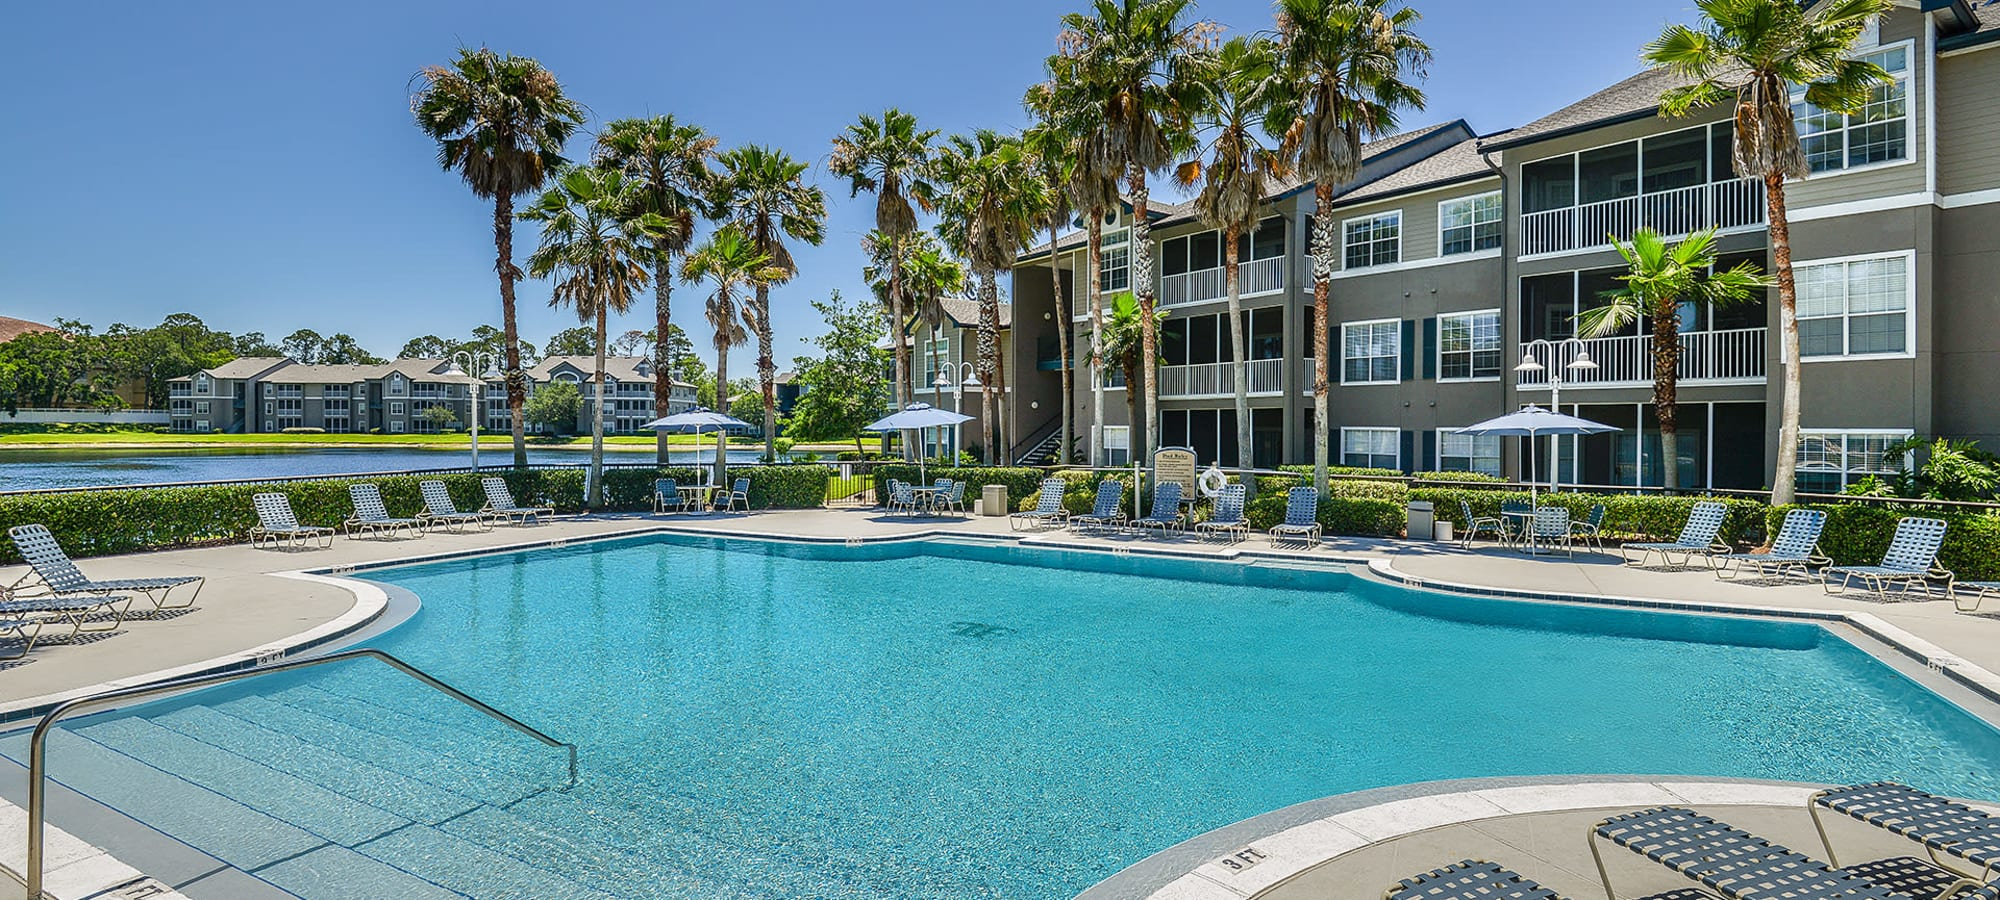 Contact Us at Ocean Park of Ponte Vedra in Jacksonville Beach, Florida